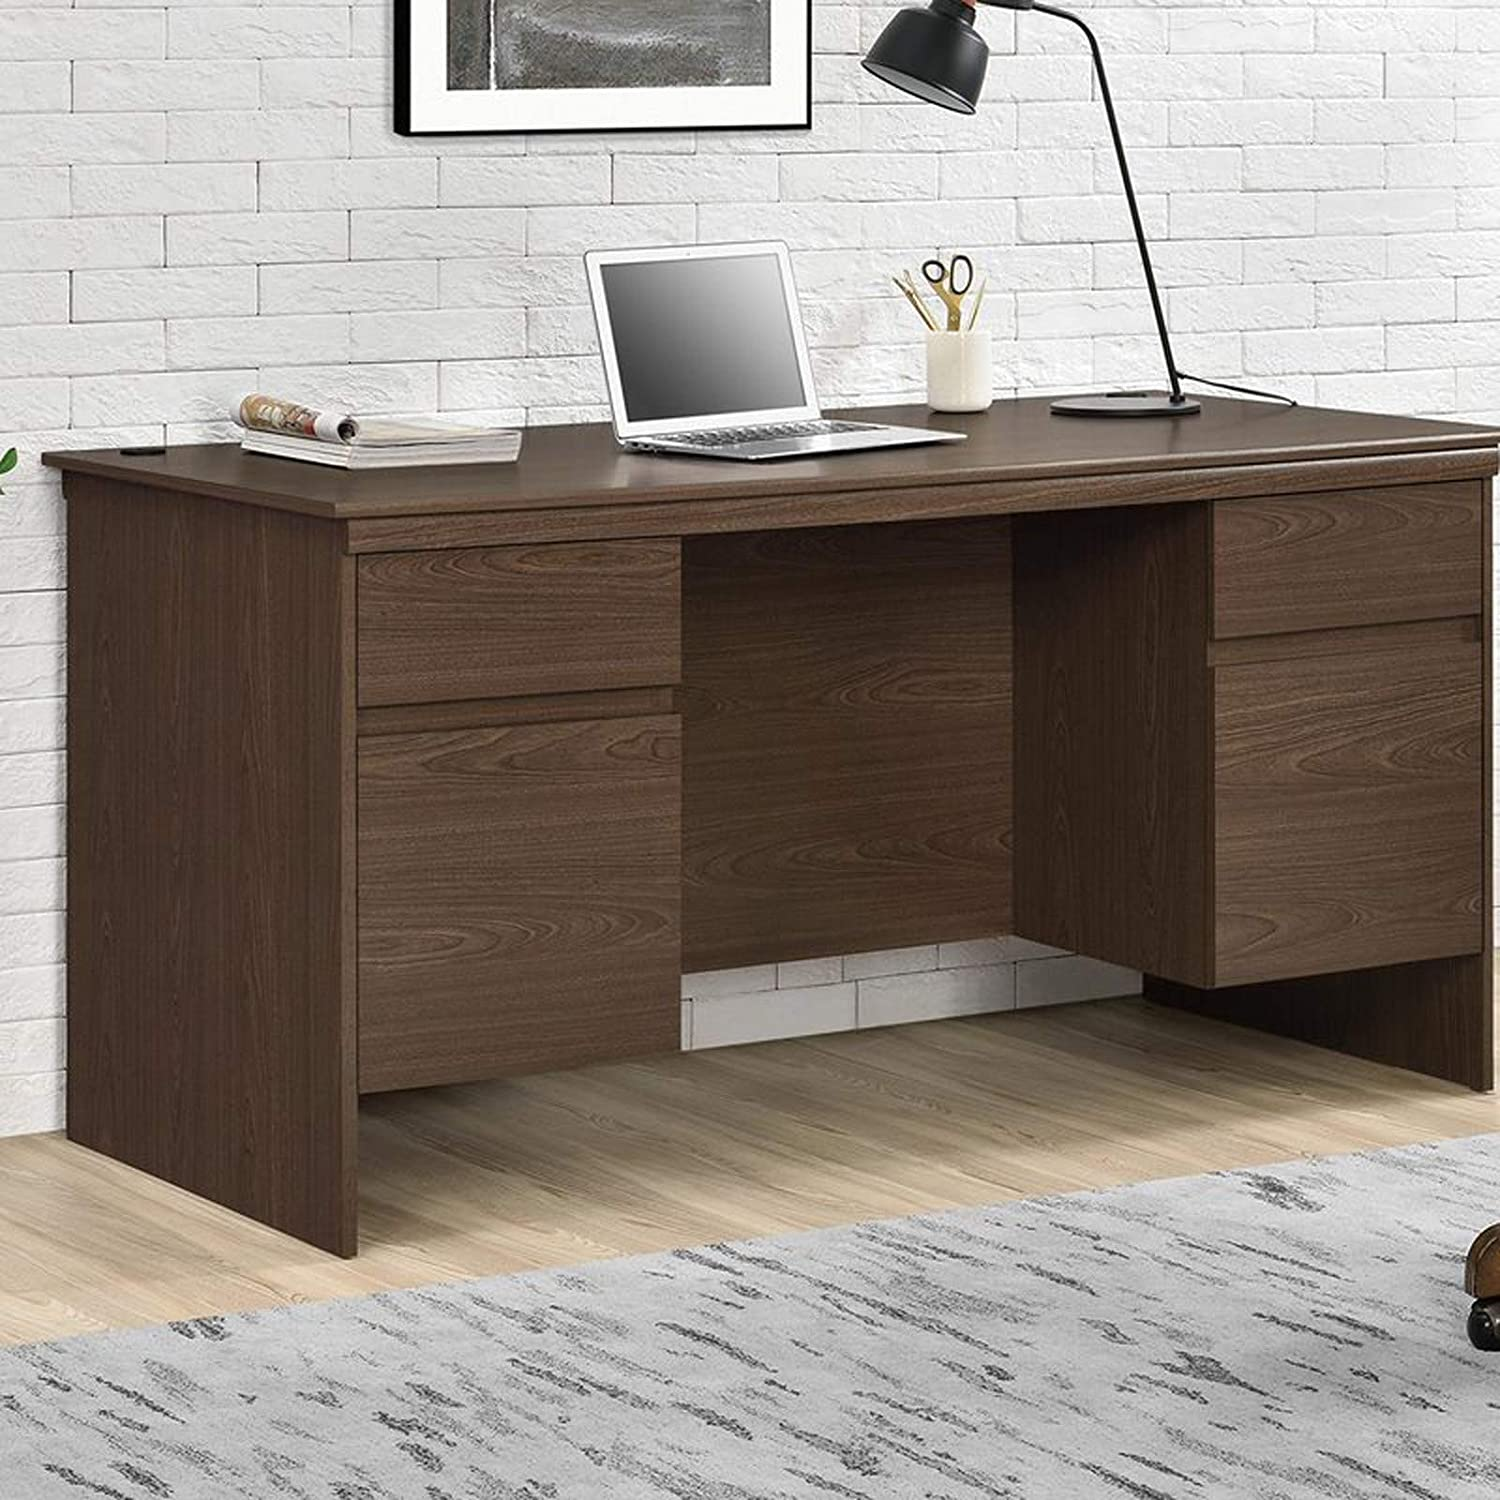 Amazon com executive computer desk modern writing table home office workstation contemporary desk with 2 drawers espresso kitchen dining